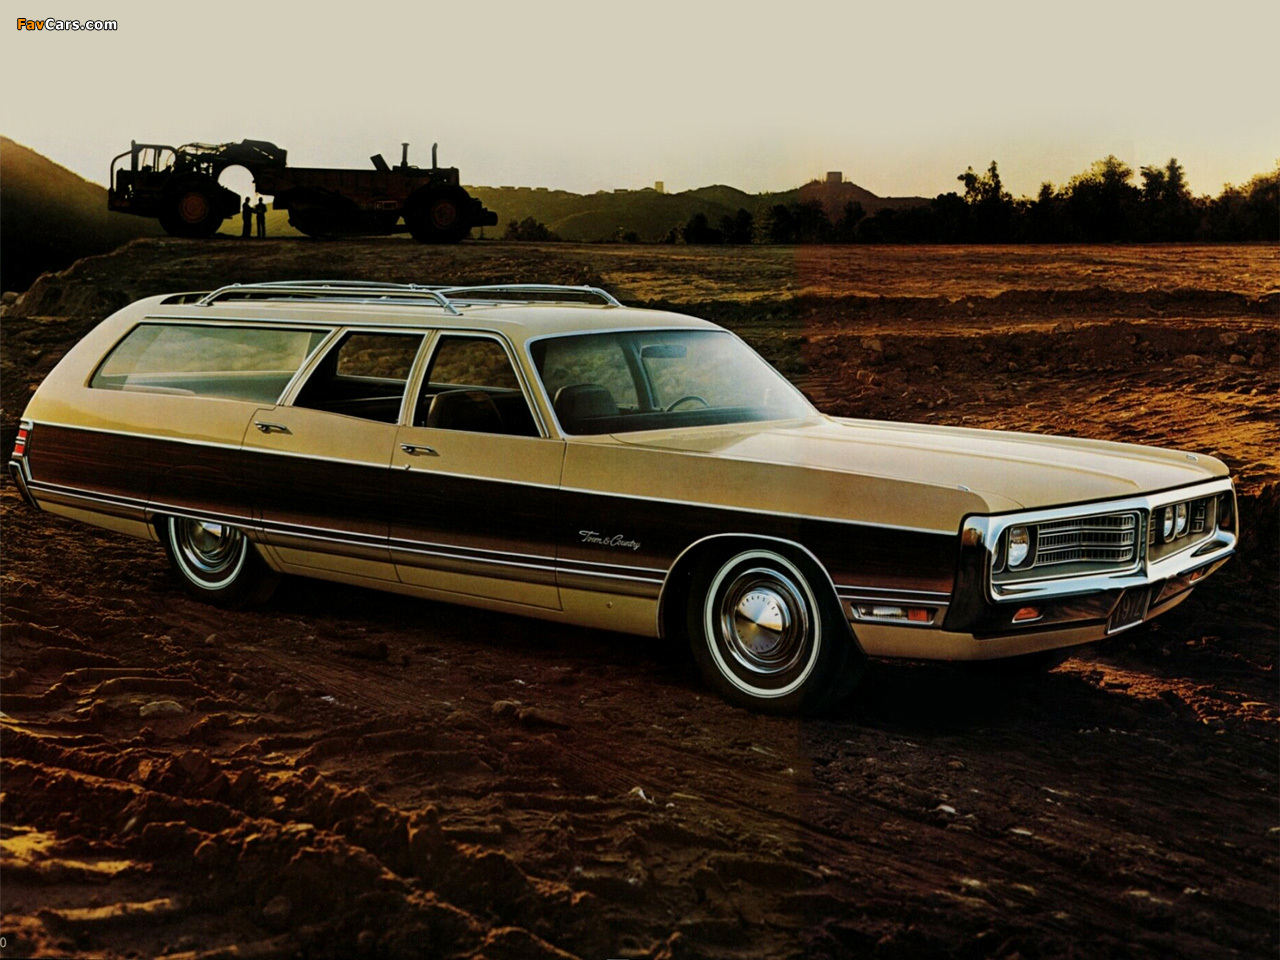 Photos of Chrysler Town & Country Station Wagon 1972 (1280 x 960)